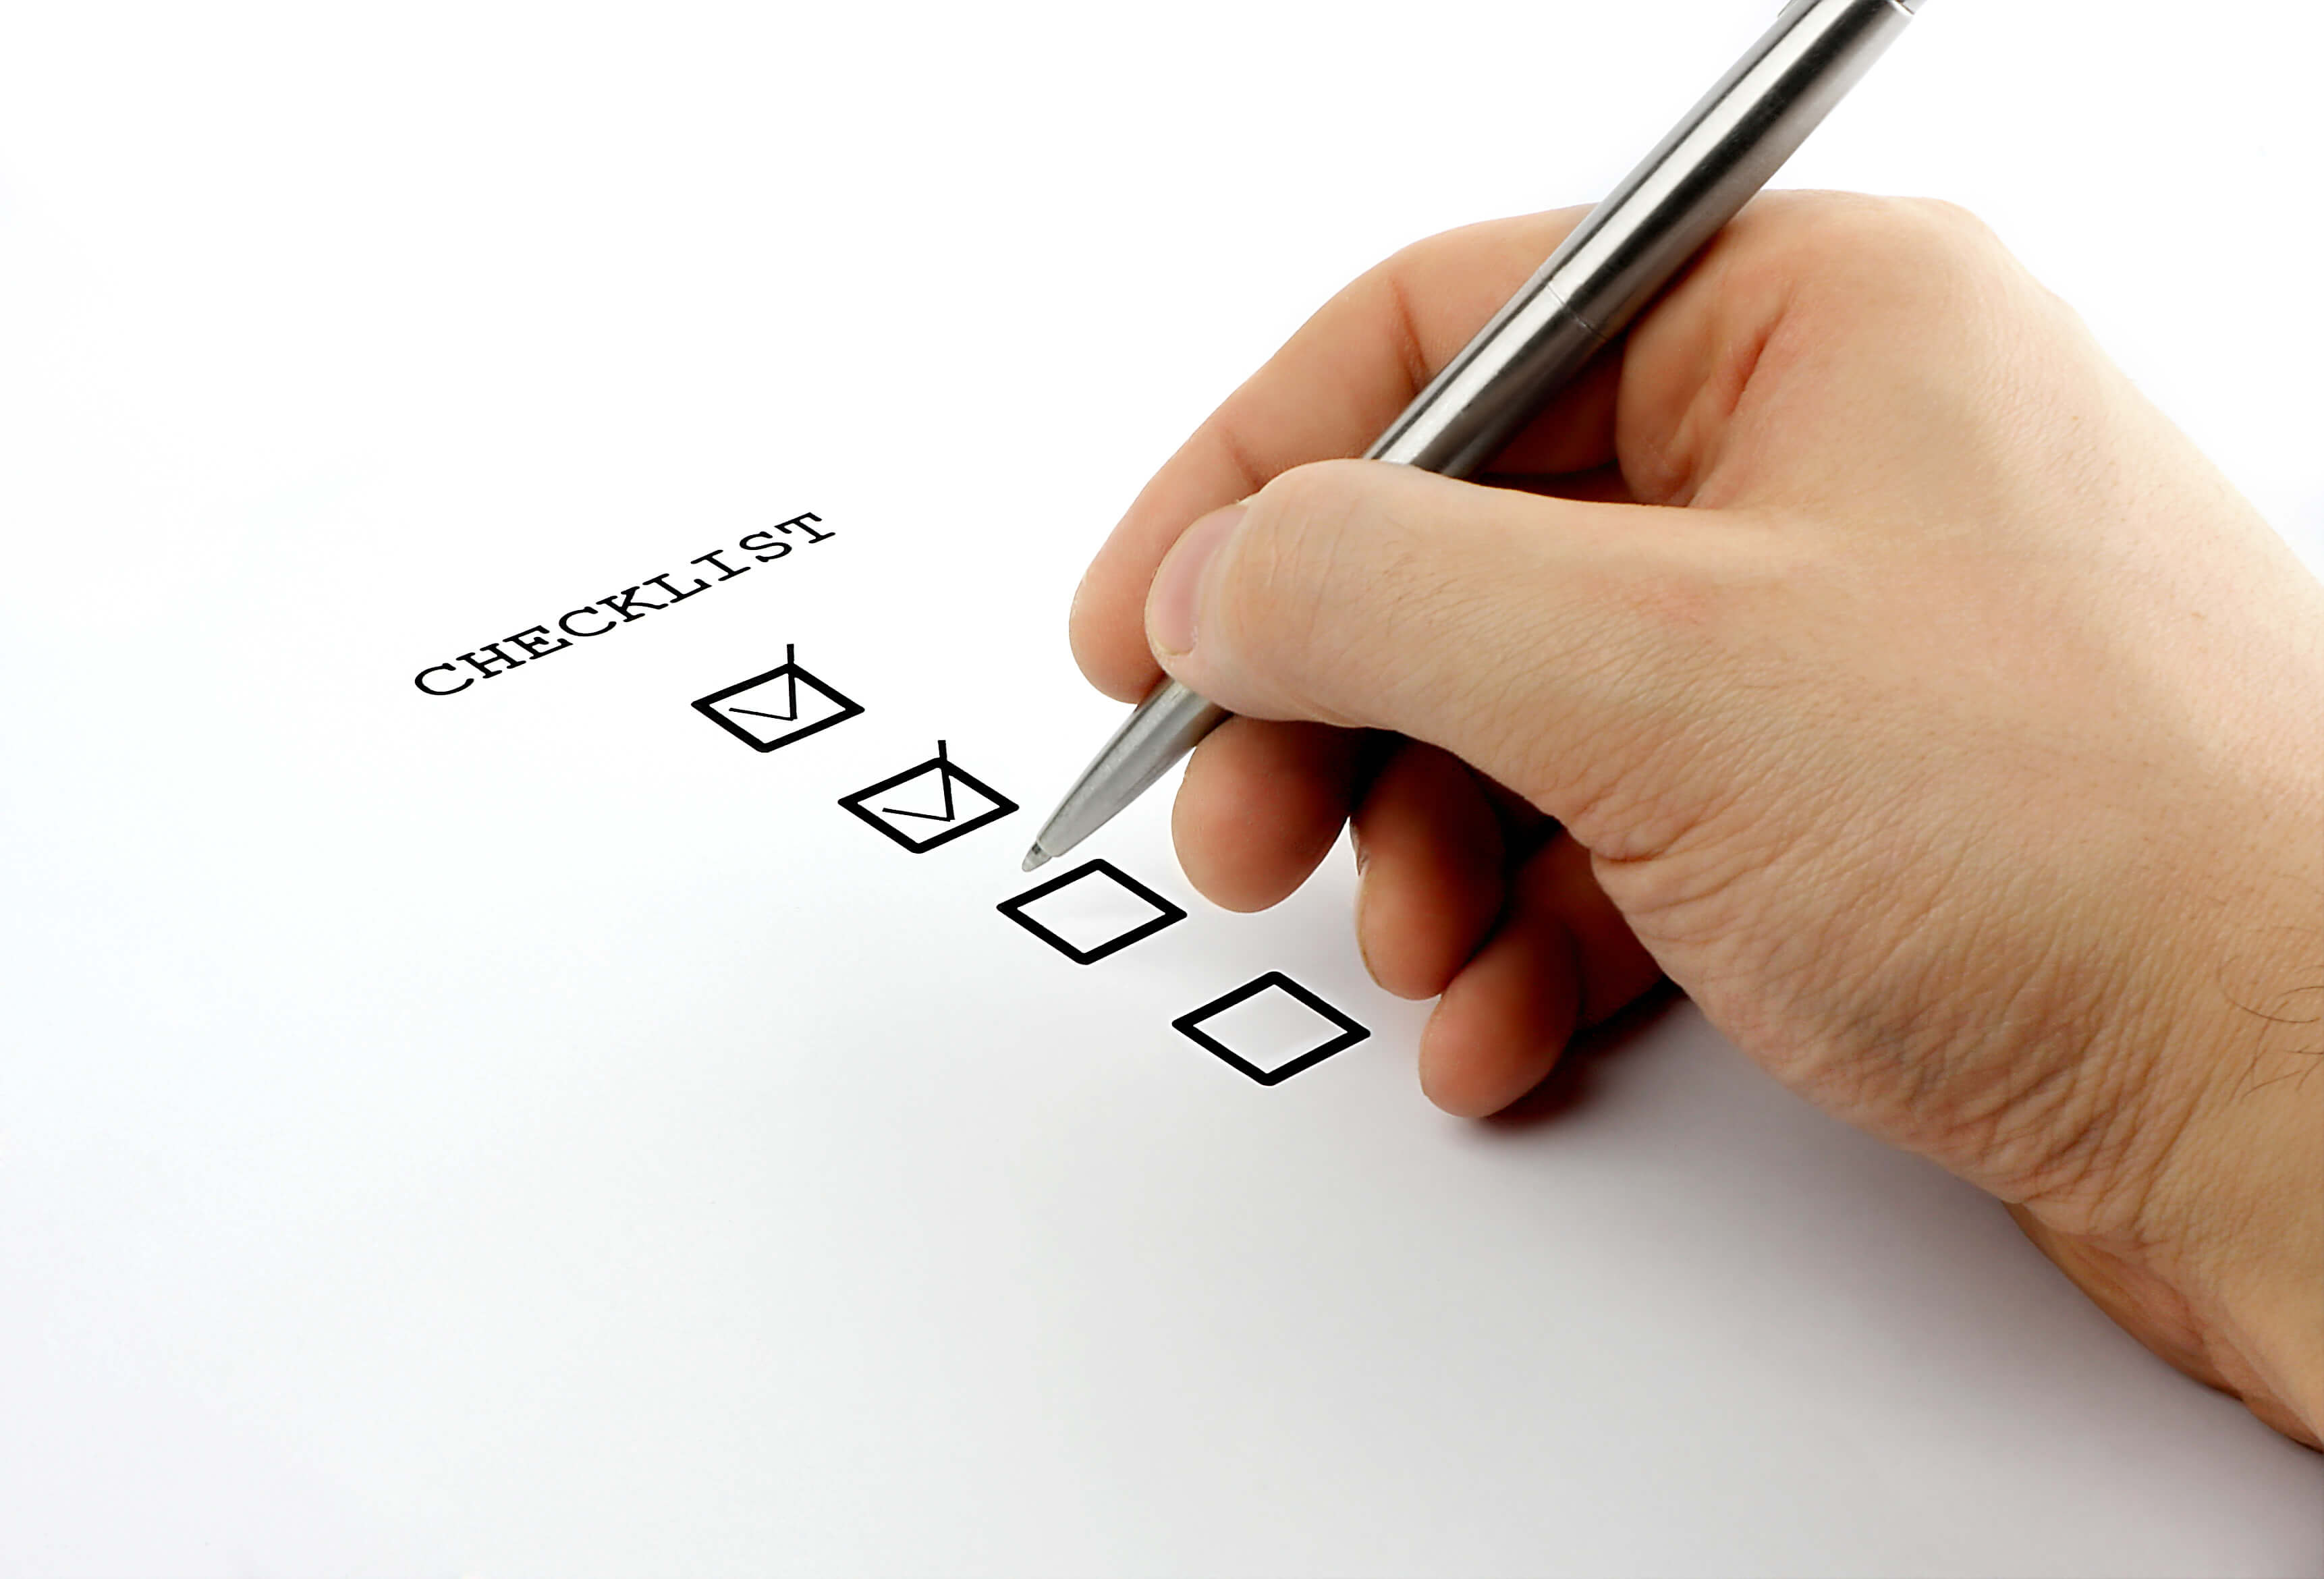 出典:http://disabilityservicesconsulting.com.au/ndis-governance-self-assessment-checklist/